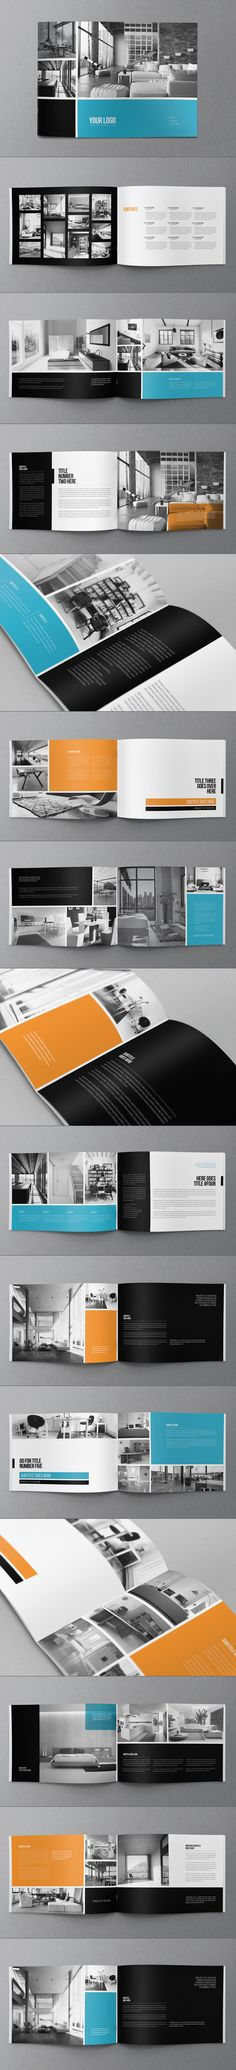 Buy Minimal Modern Brochure by AbraDesign on GraphicRiver. MINIMAL MODERN BROCHURE This brochure is an ideal way to showcase your travel business in an original way. Web Design, Layout Design, Design Typo, Graphic Design Layouts, Graphic Design Inspiration, Modern Design, Portfolio Design, Mise En Page Portfolio, Design Brochure